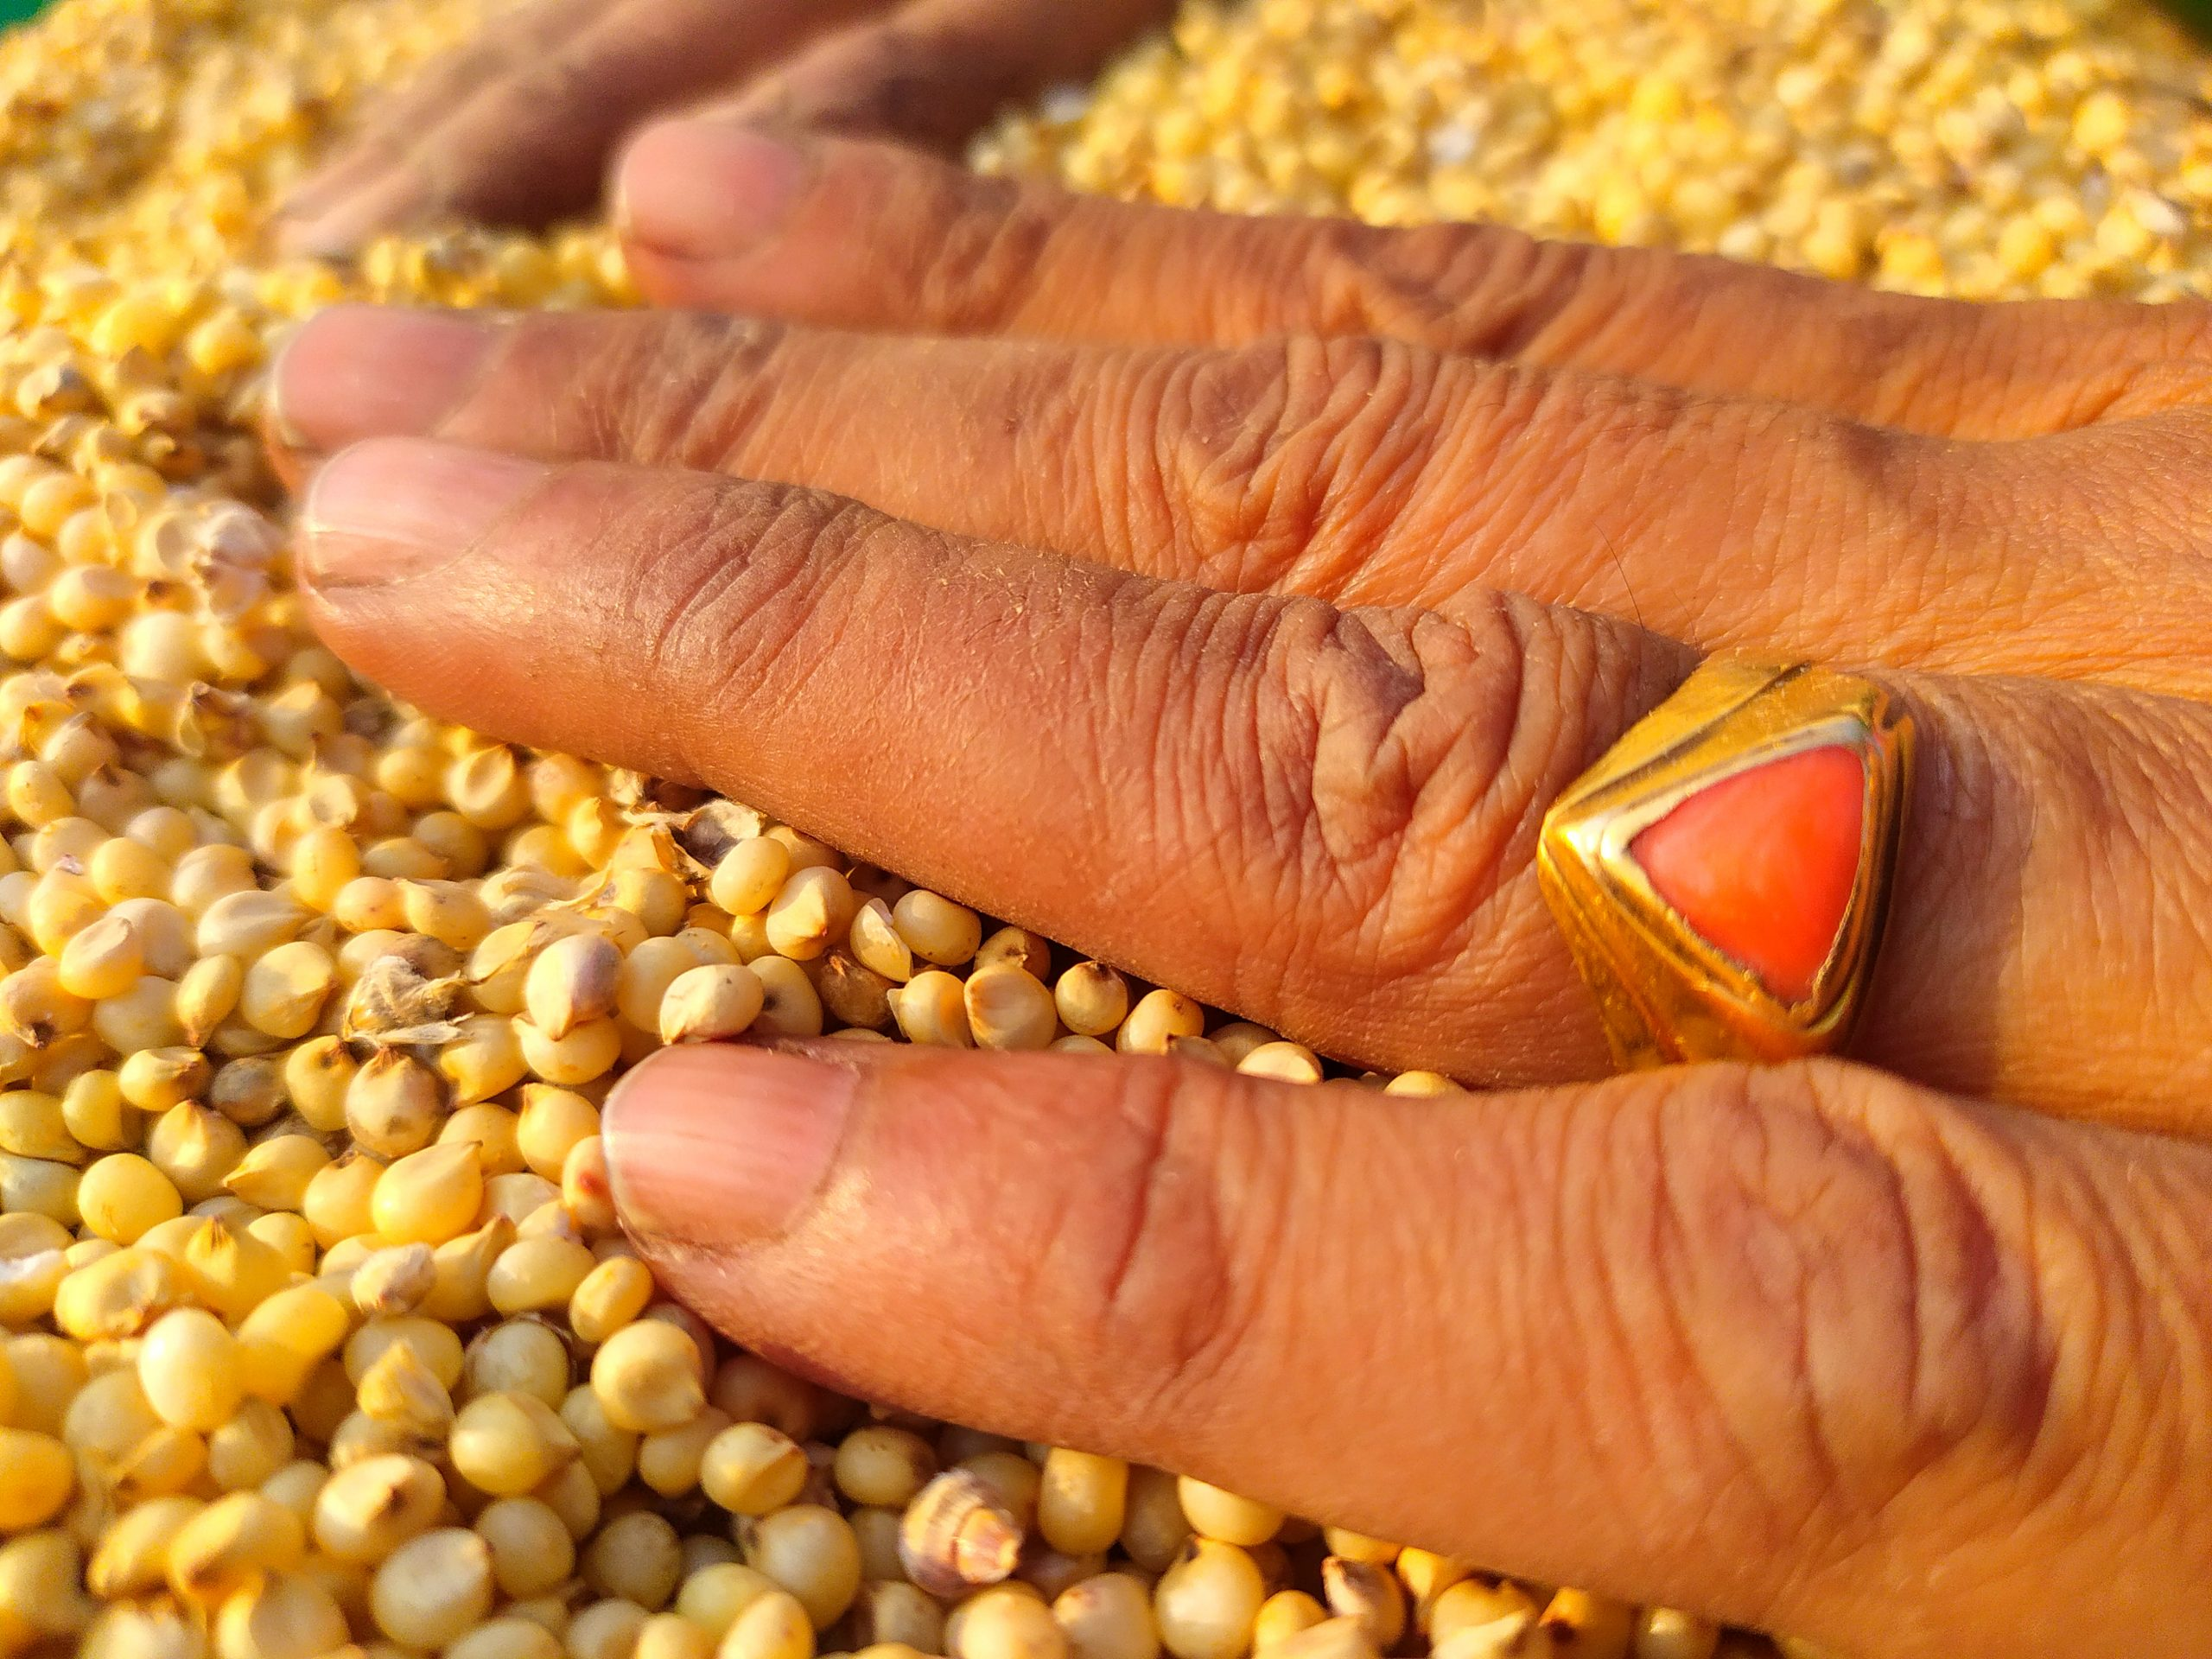 hand on grains